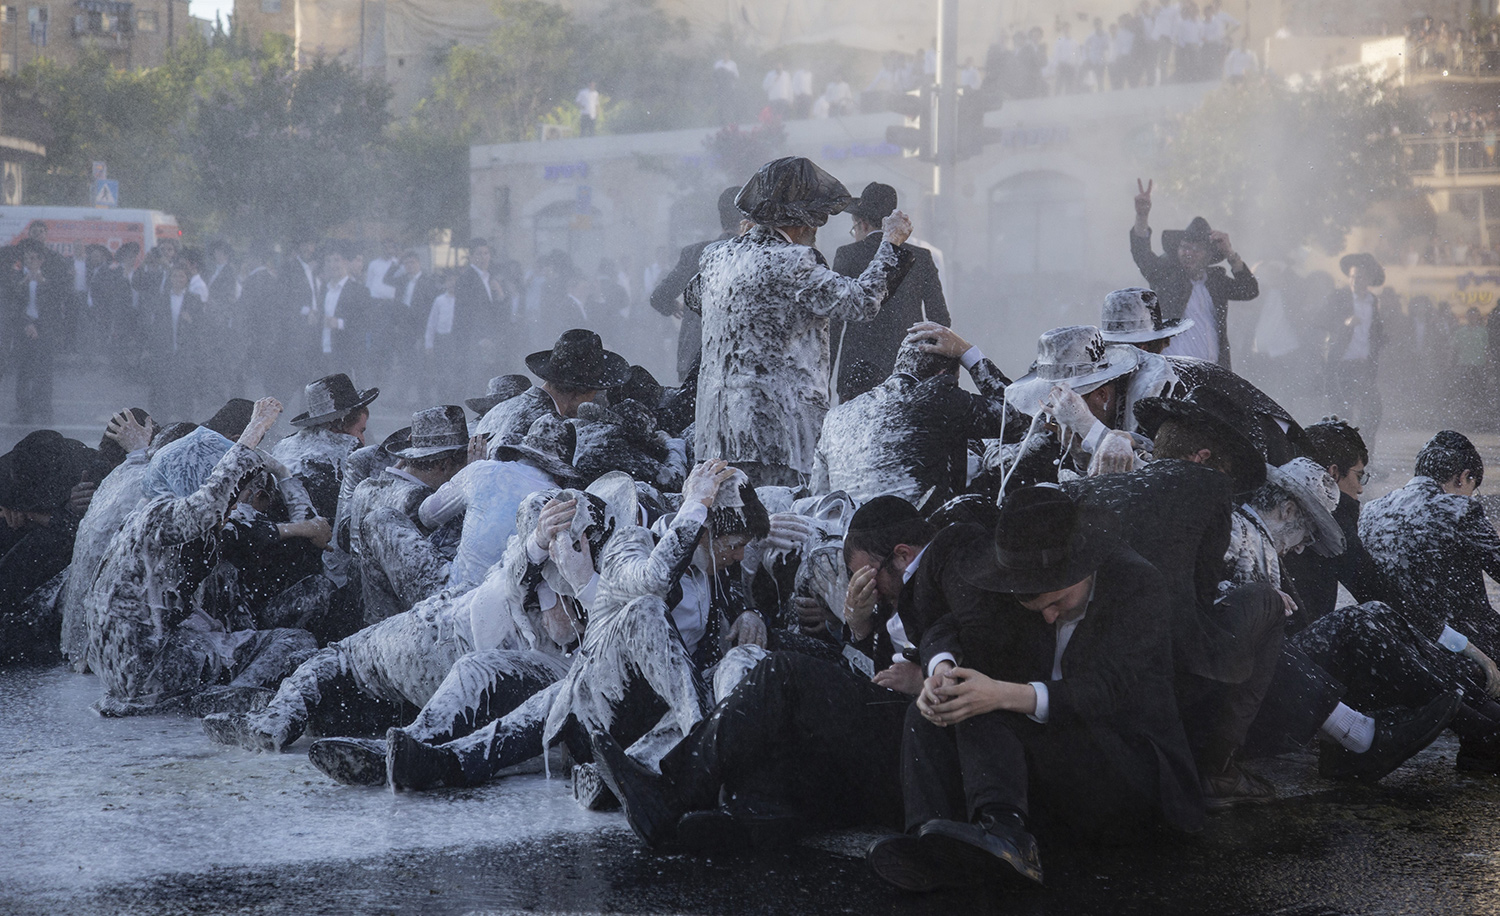 Israeli police officers turn water cannons on young ultra-Orthodox Jews gathered to protest their possible forced military conscription. Jerusalem, July 02, 2019. Faiz Abu Rmeleh/Anadolu Agency/Getty Images.